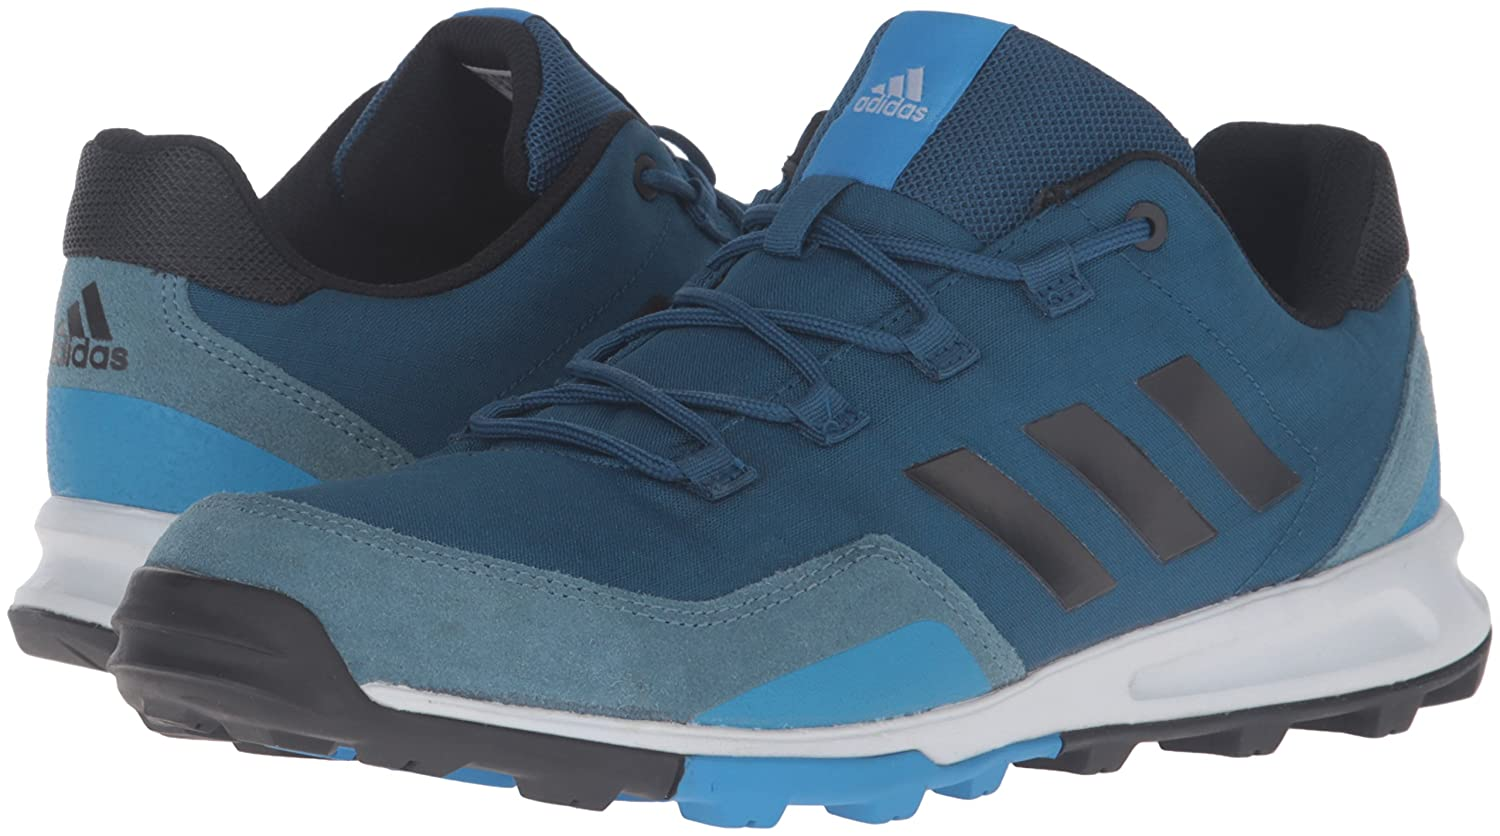 Explosion Models Mens Sneakers Adidas Tivid Mid Low Black Clear Grey Shock Blue